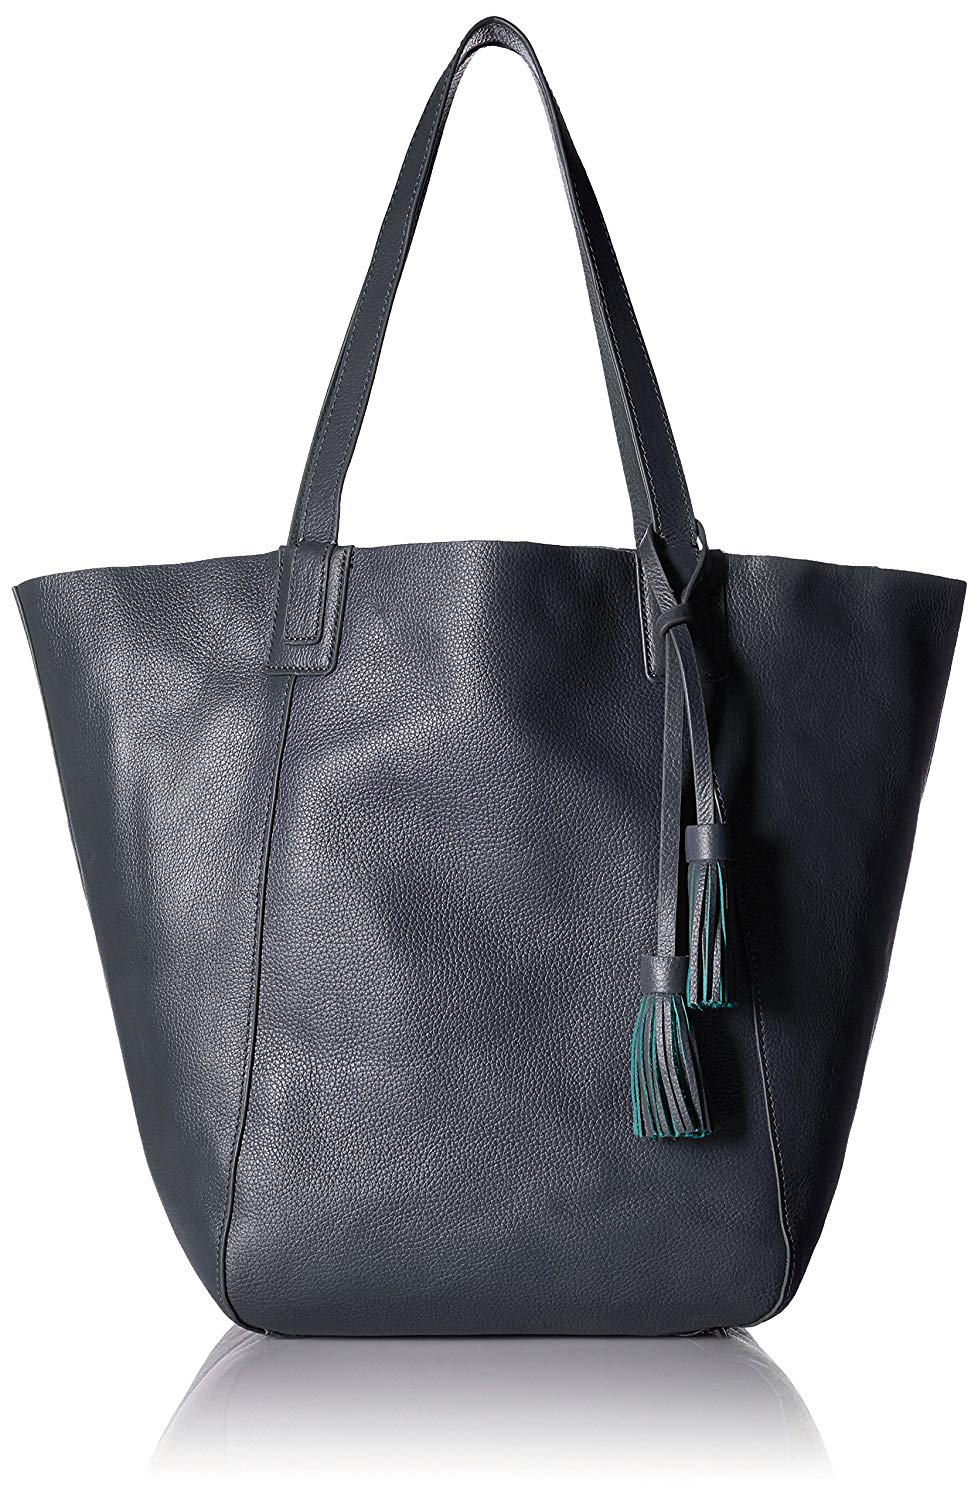 945bc7e40521 Get Quotations · Lucky Brand Reese Reversible Tote Bag